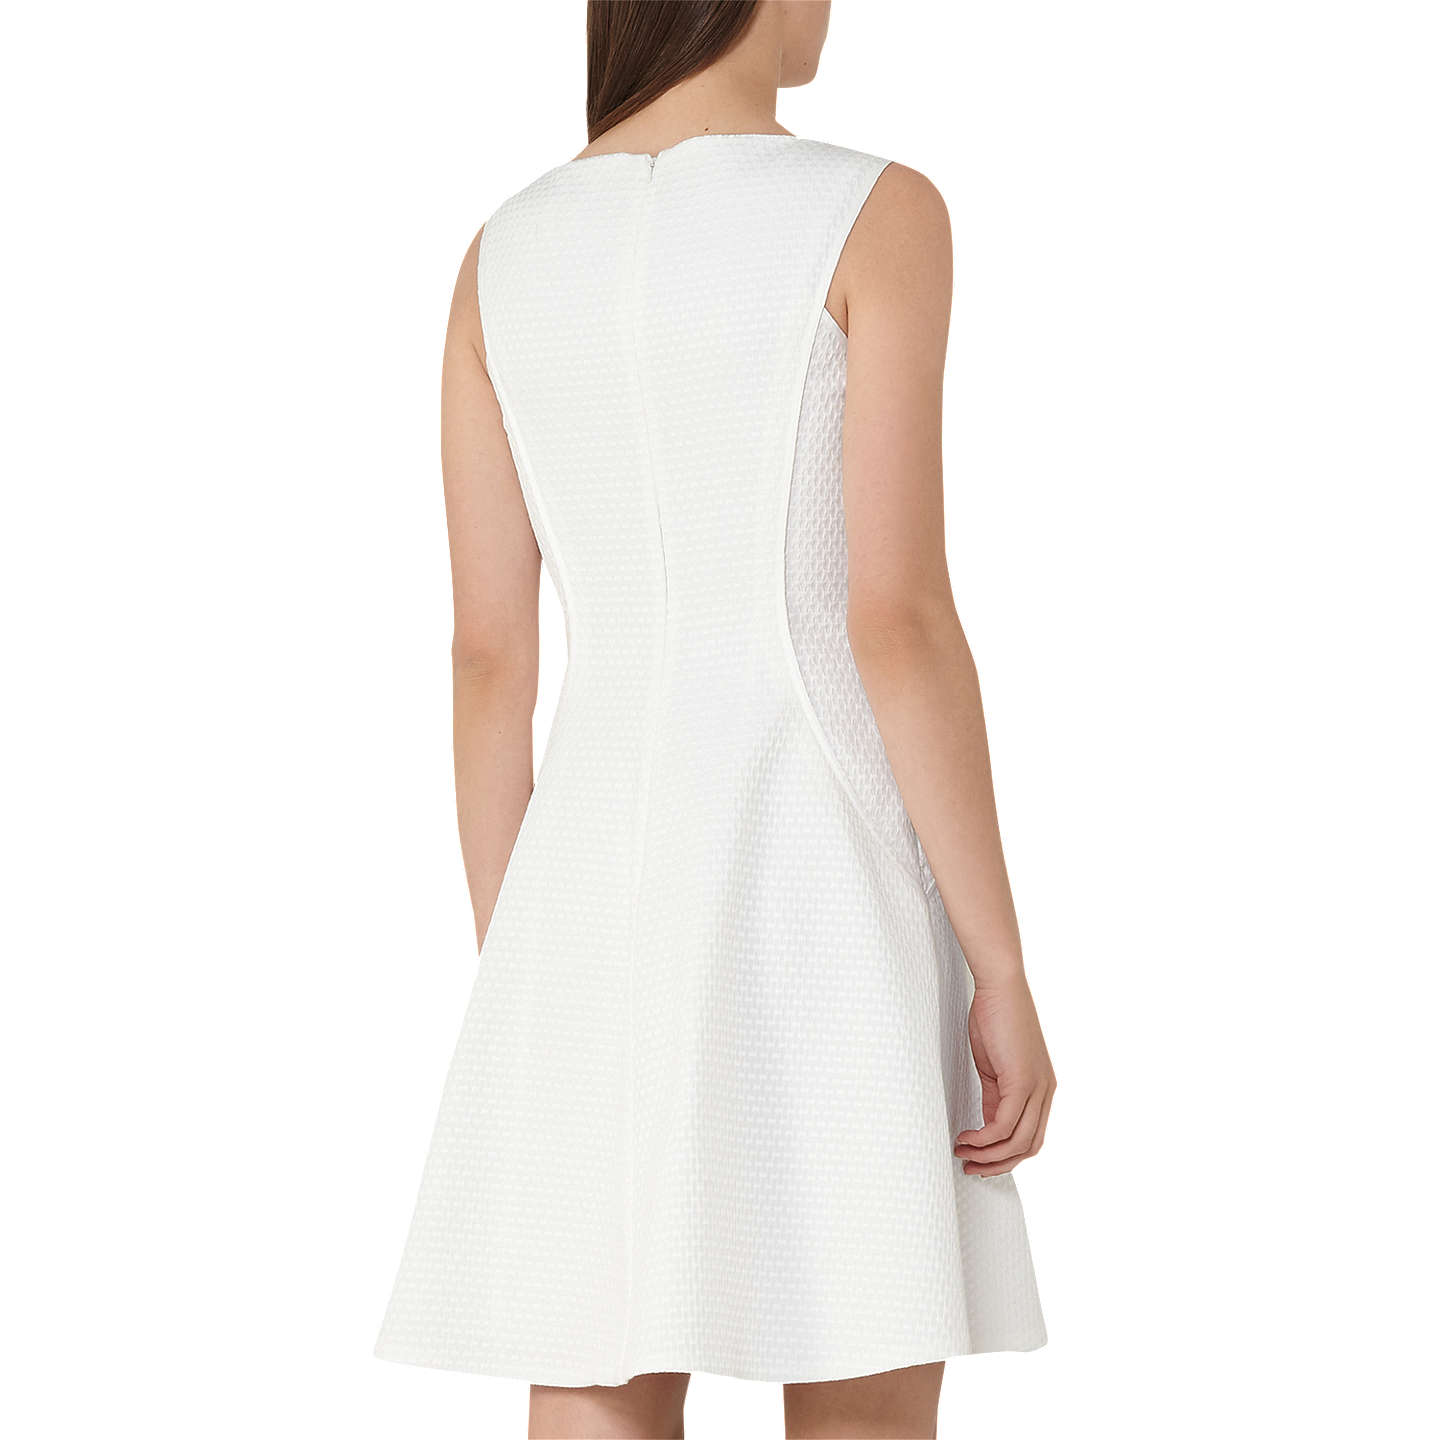 Cara - Textured Fit And Flare Dress in Off White, Womens, Size 10 Reiss